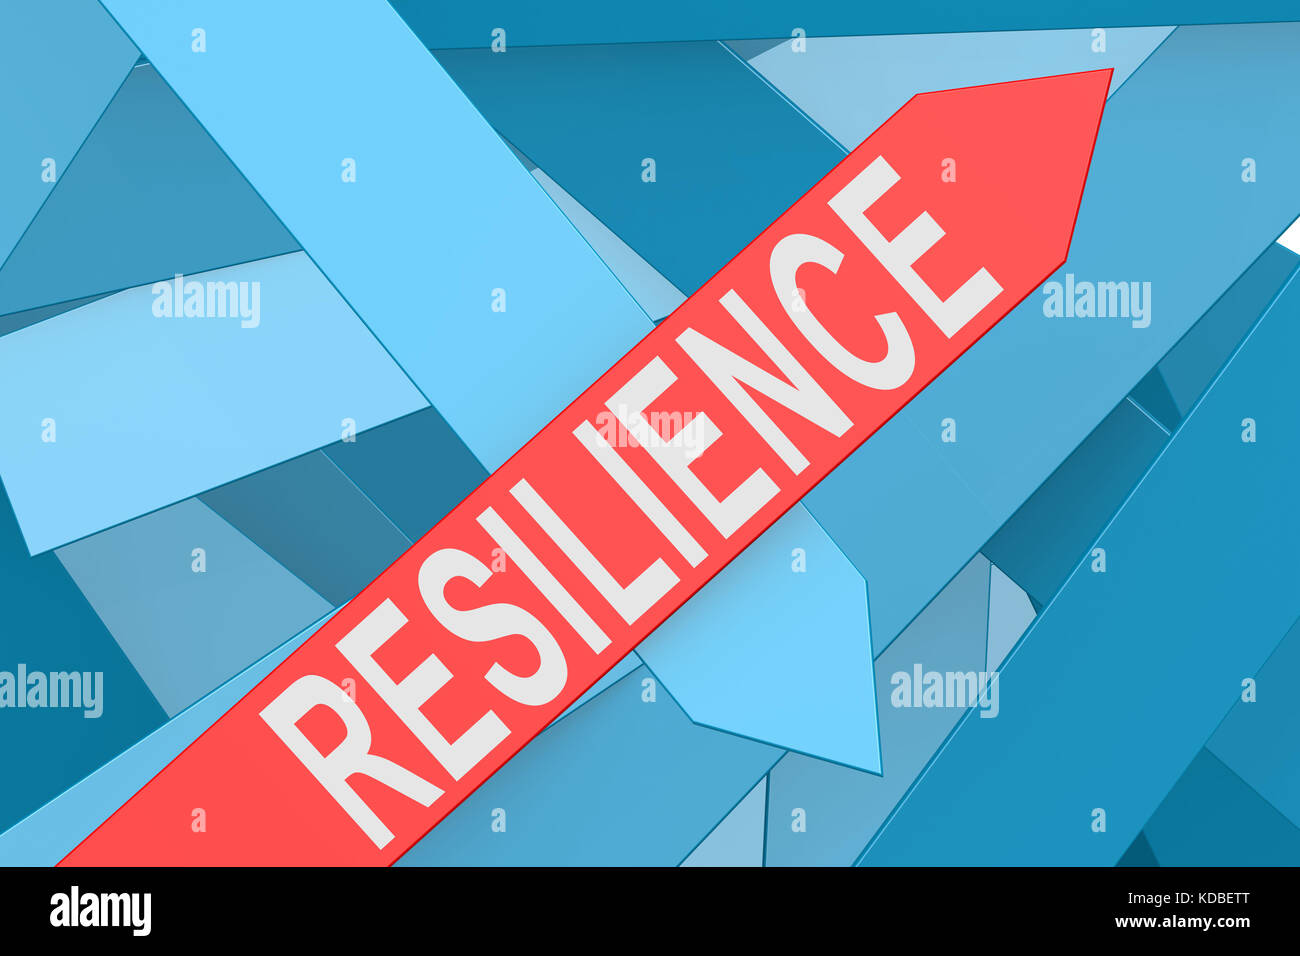 Resilience arrow pointing upward, 3d rendering - Stock Image